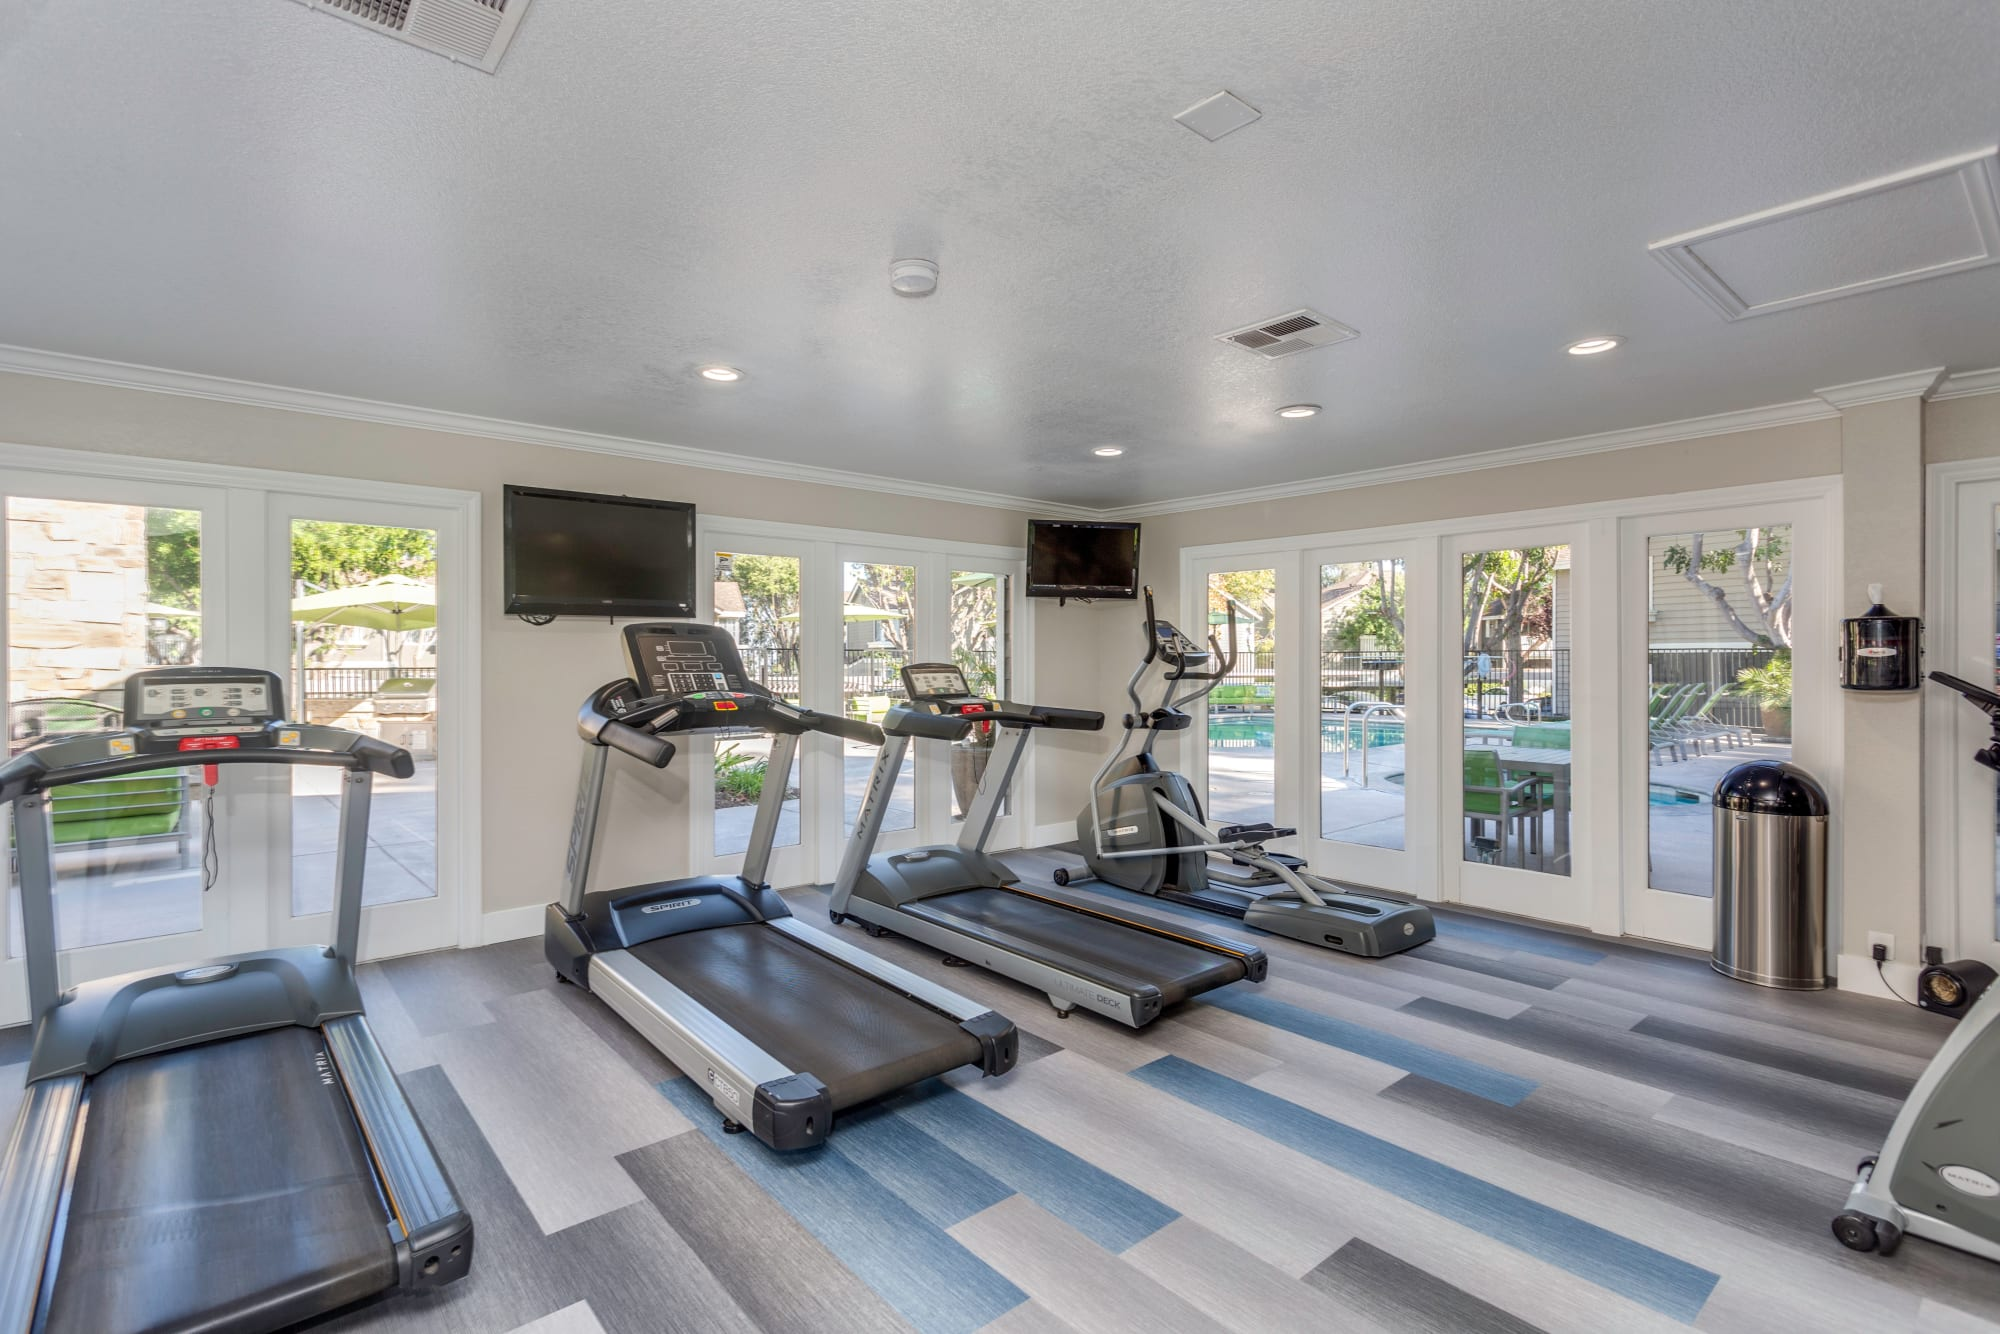 Fitness center at Village Oaks in Chino Hills, California